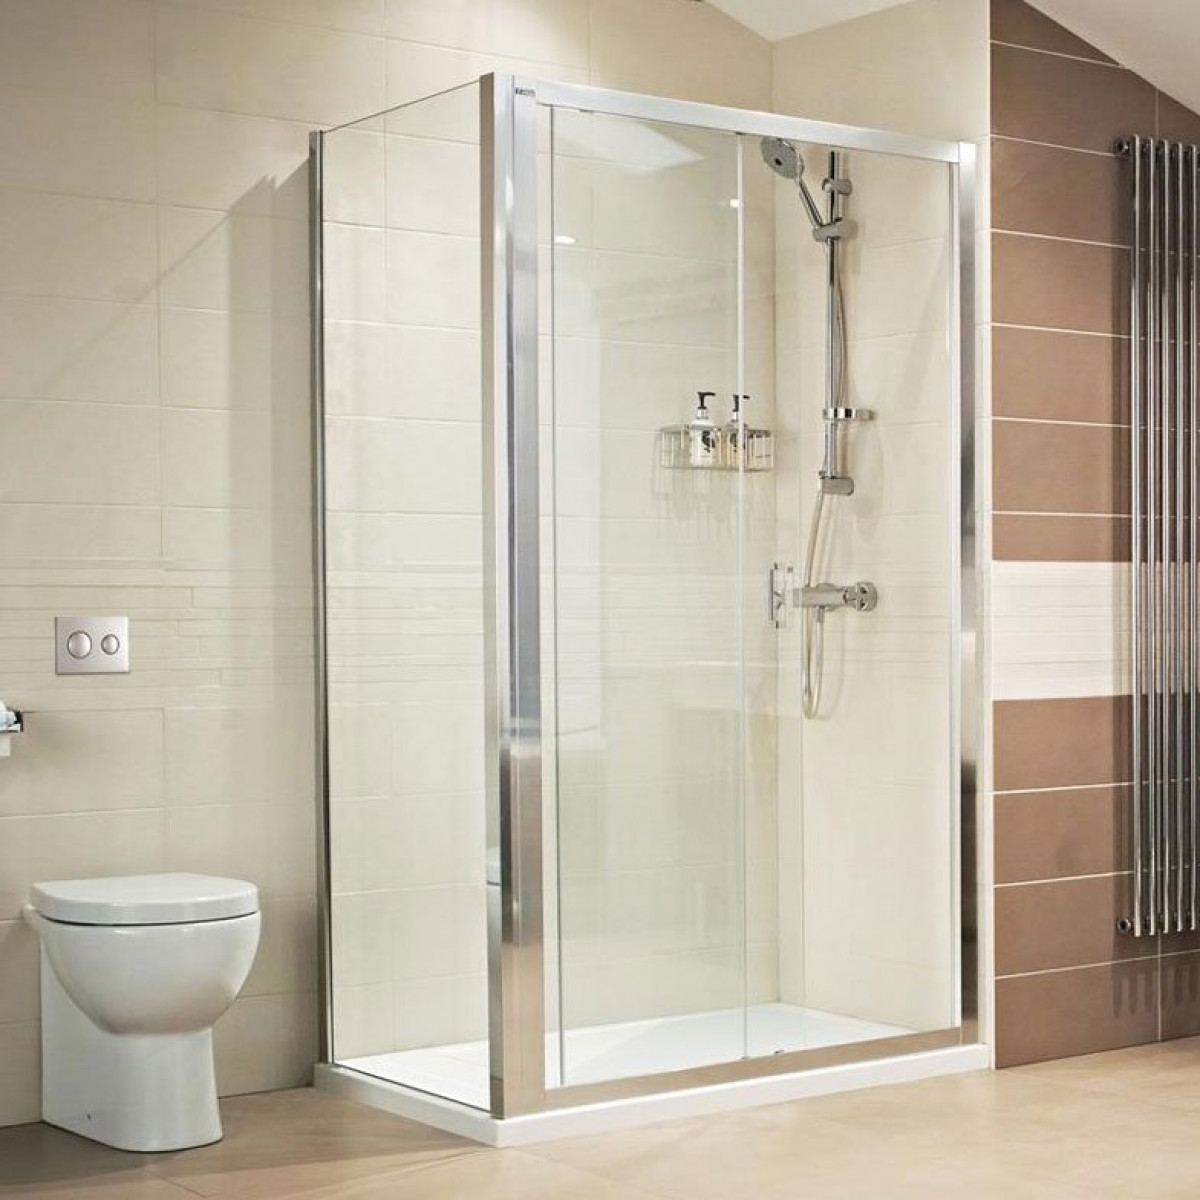 Roman lumin8 1400mm sliding shower door for 1400 sliding shower door